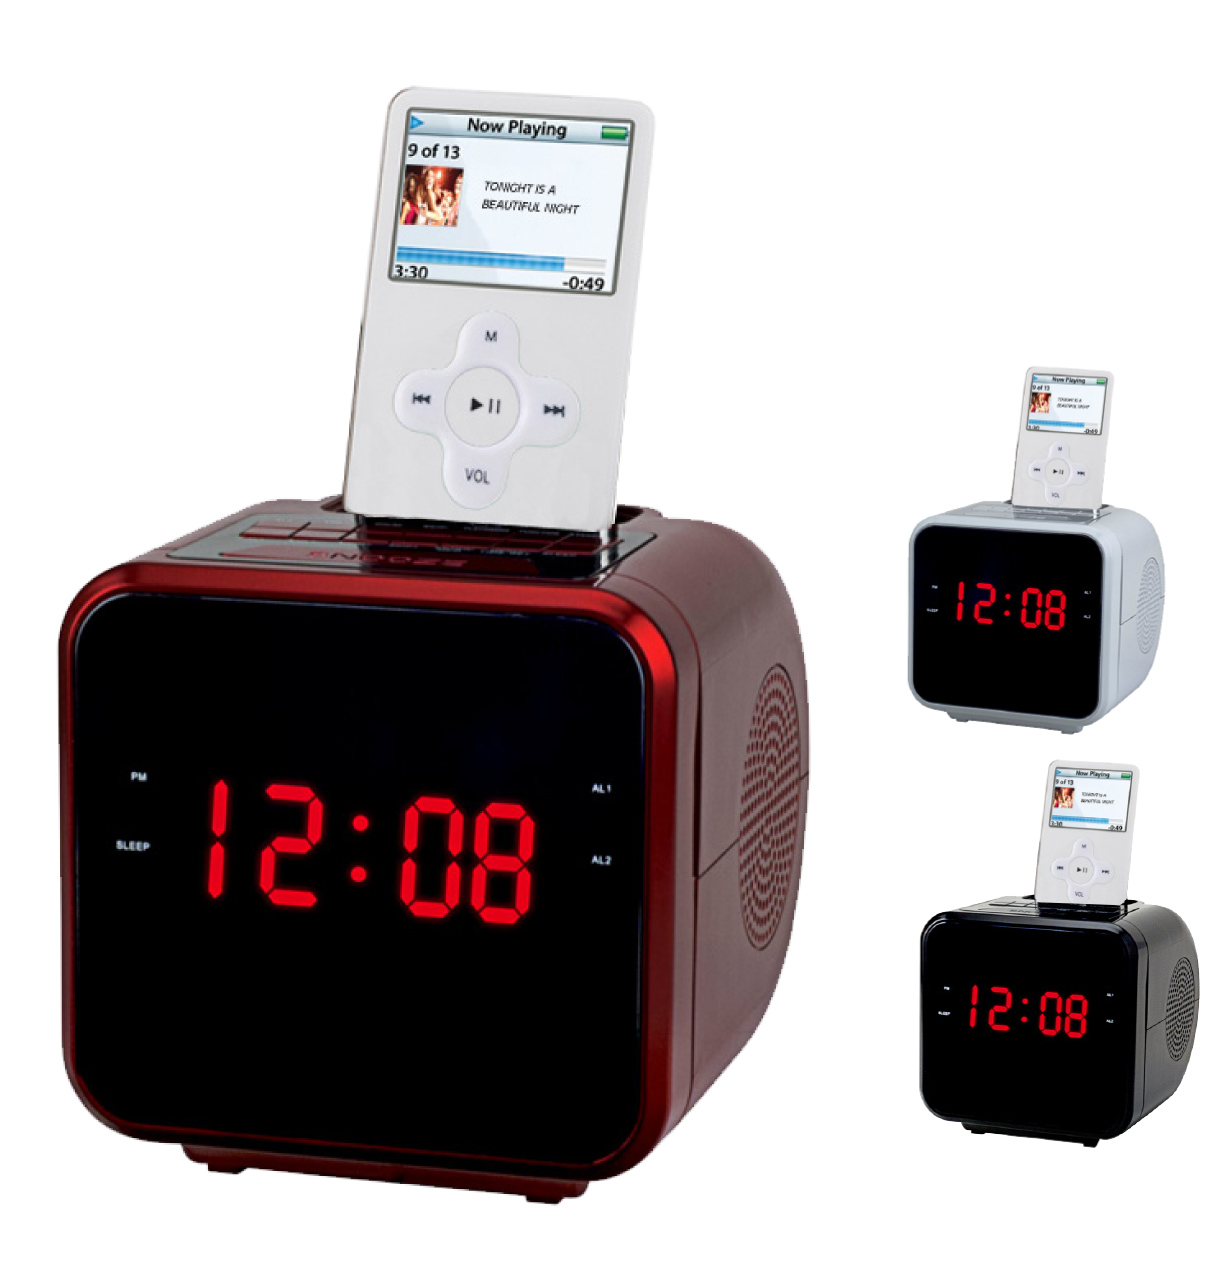 portable mp3 player speakers supersonic inc iq 1303 1 2 display a. Black Bedroom Furniture Sets. Home Design Ideas